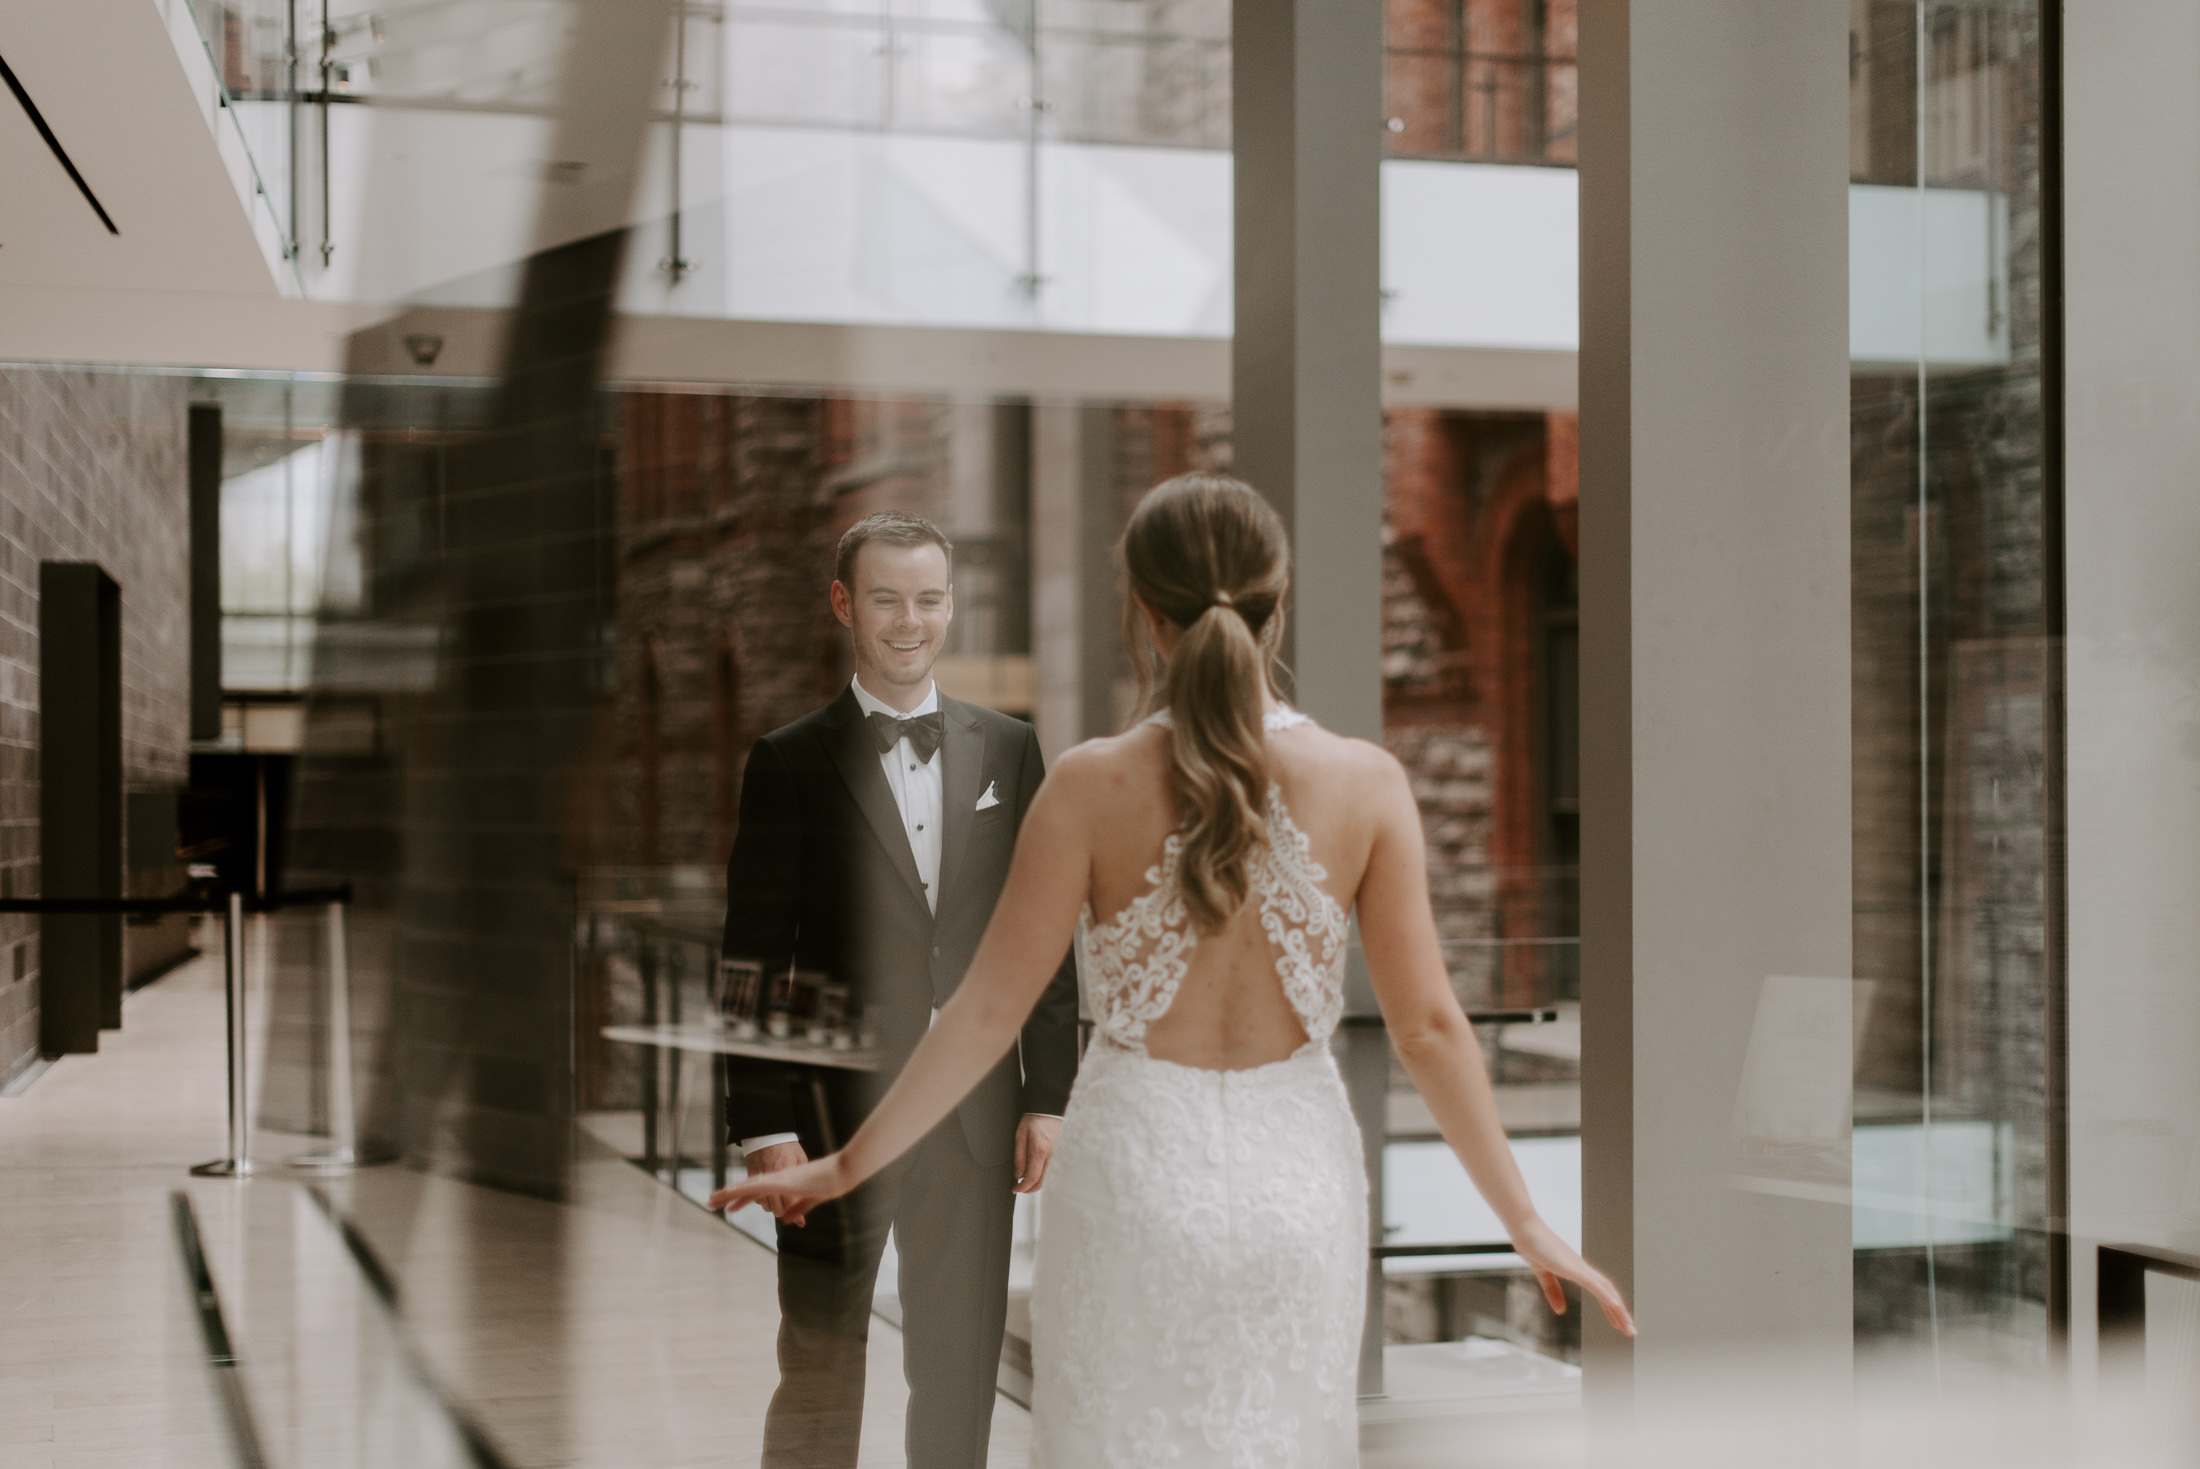 Wedding at Royal Conservatory of Music